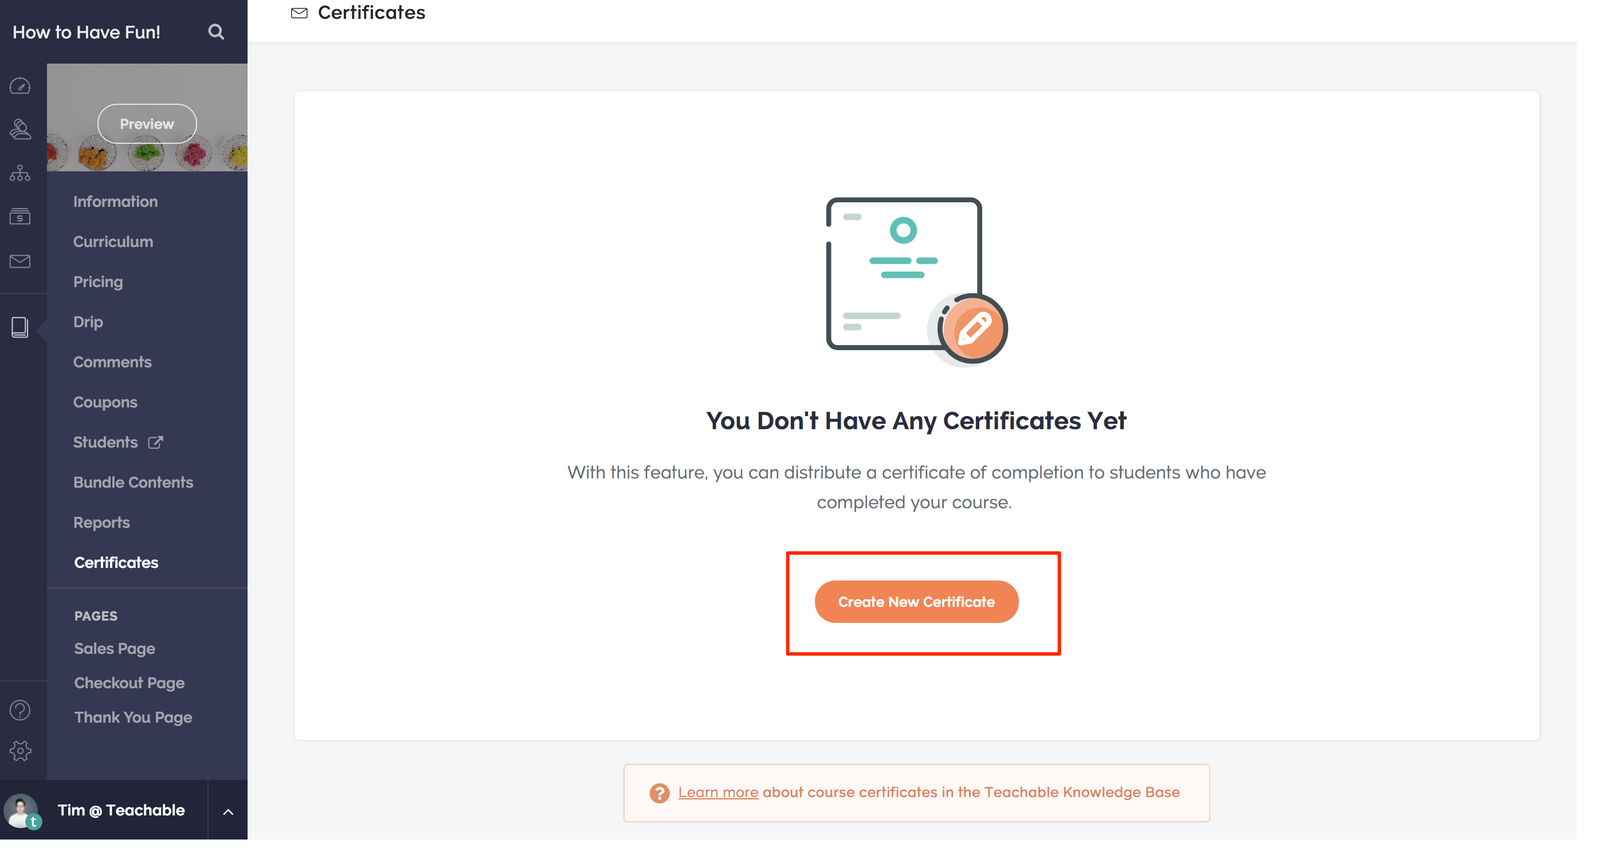 create_new_certificate.png